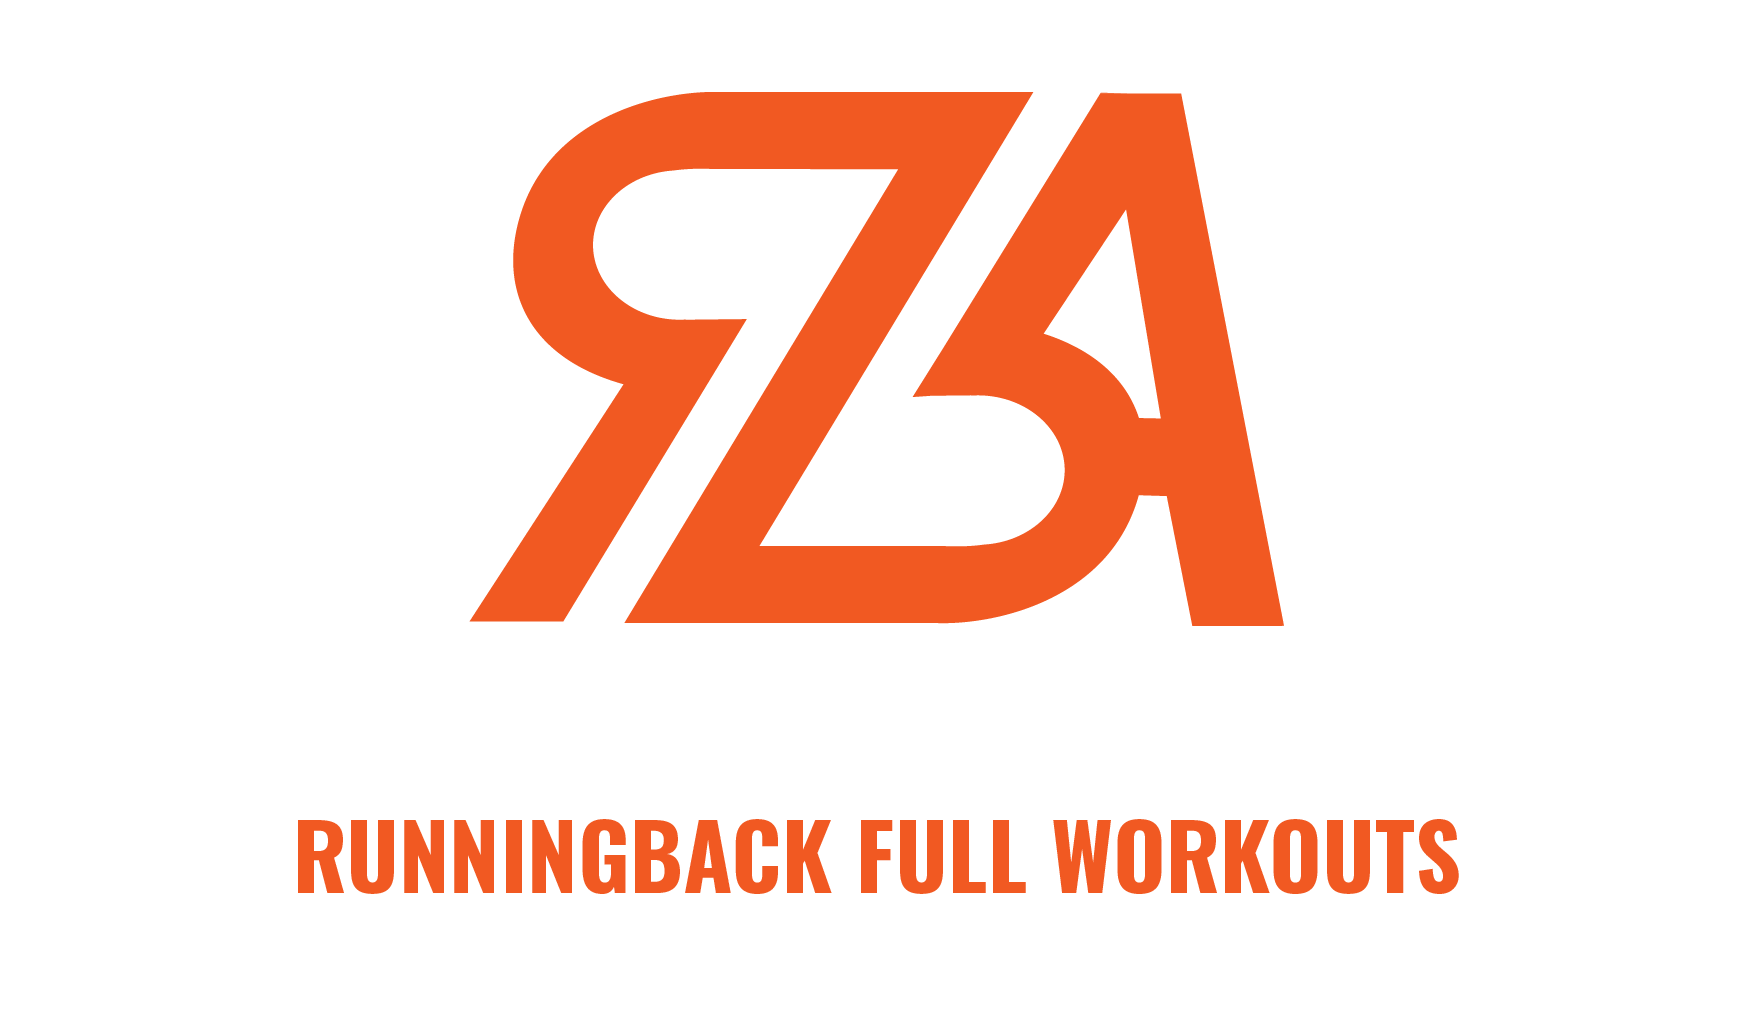 Running_back_academy [Recovered]-09